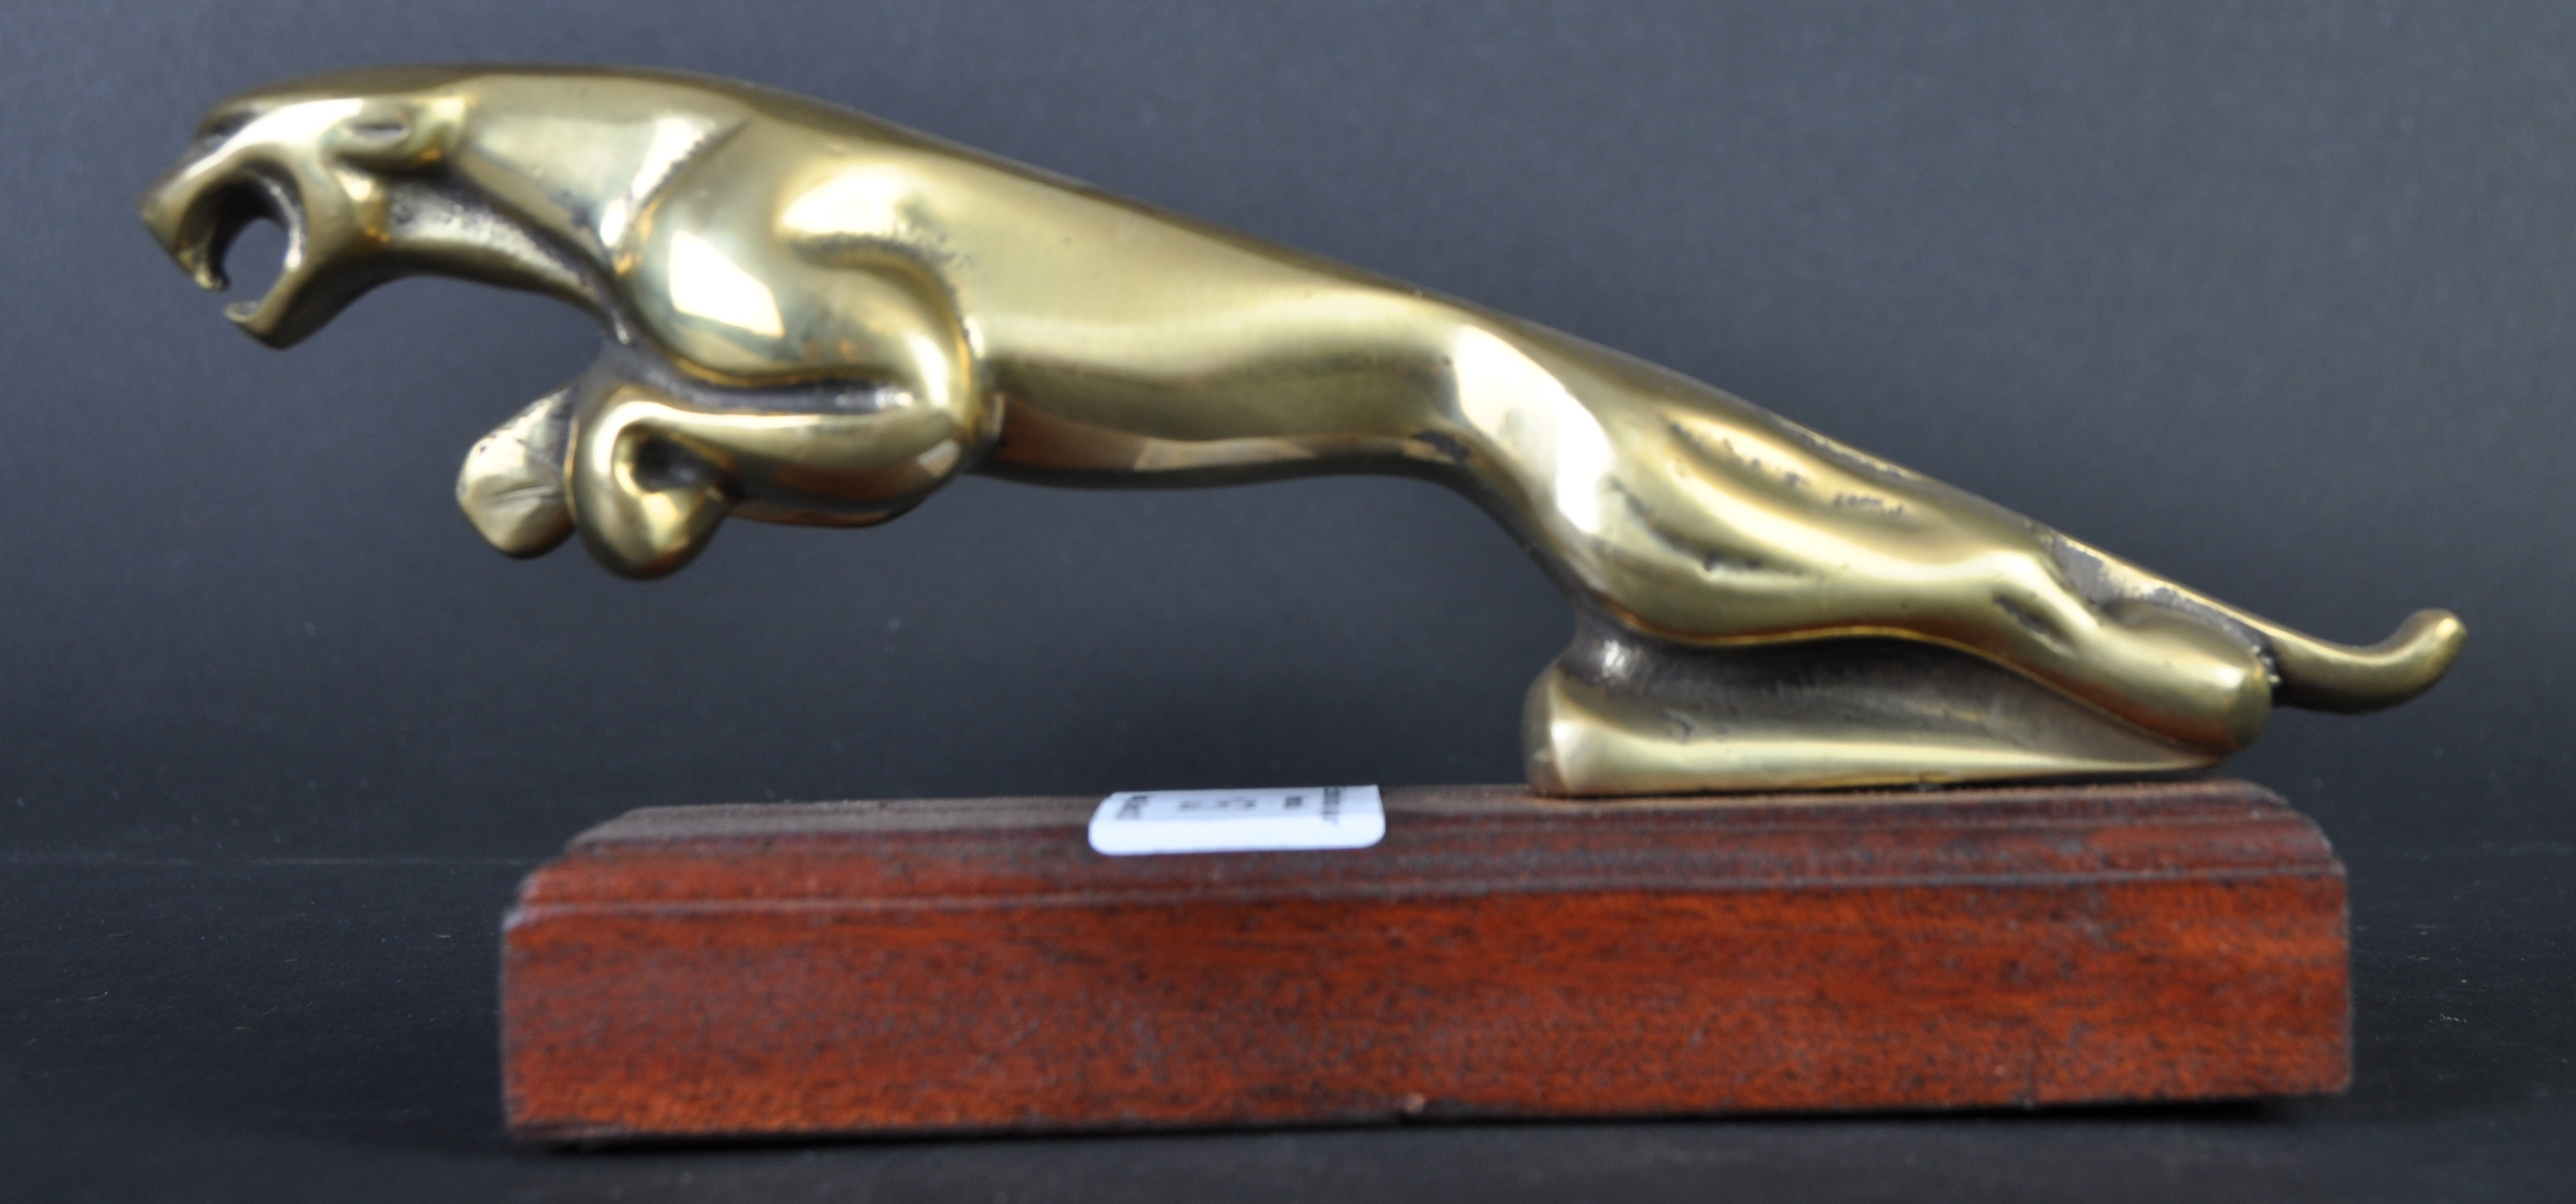 JAGUAR - TYPE 2 BRASS LEAPER BONNET MASCOT - Image 3 of 5